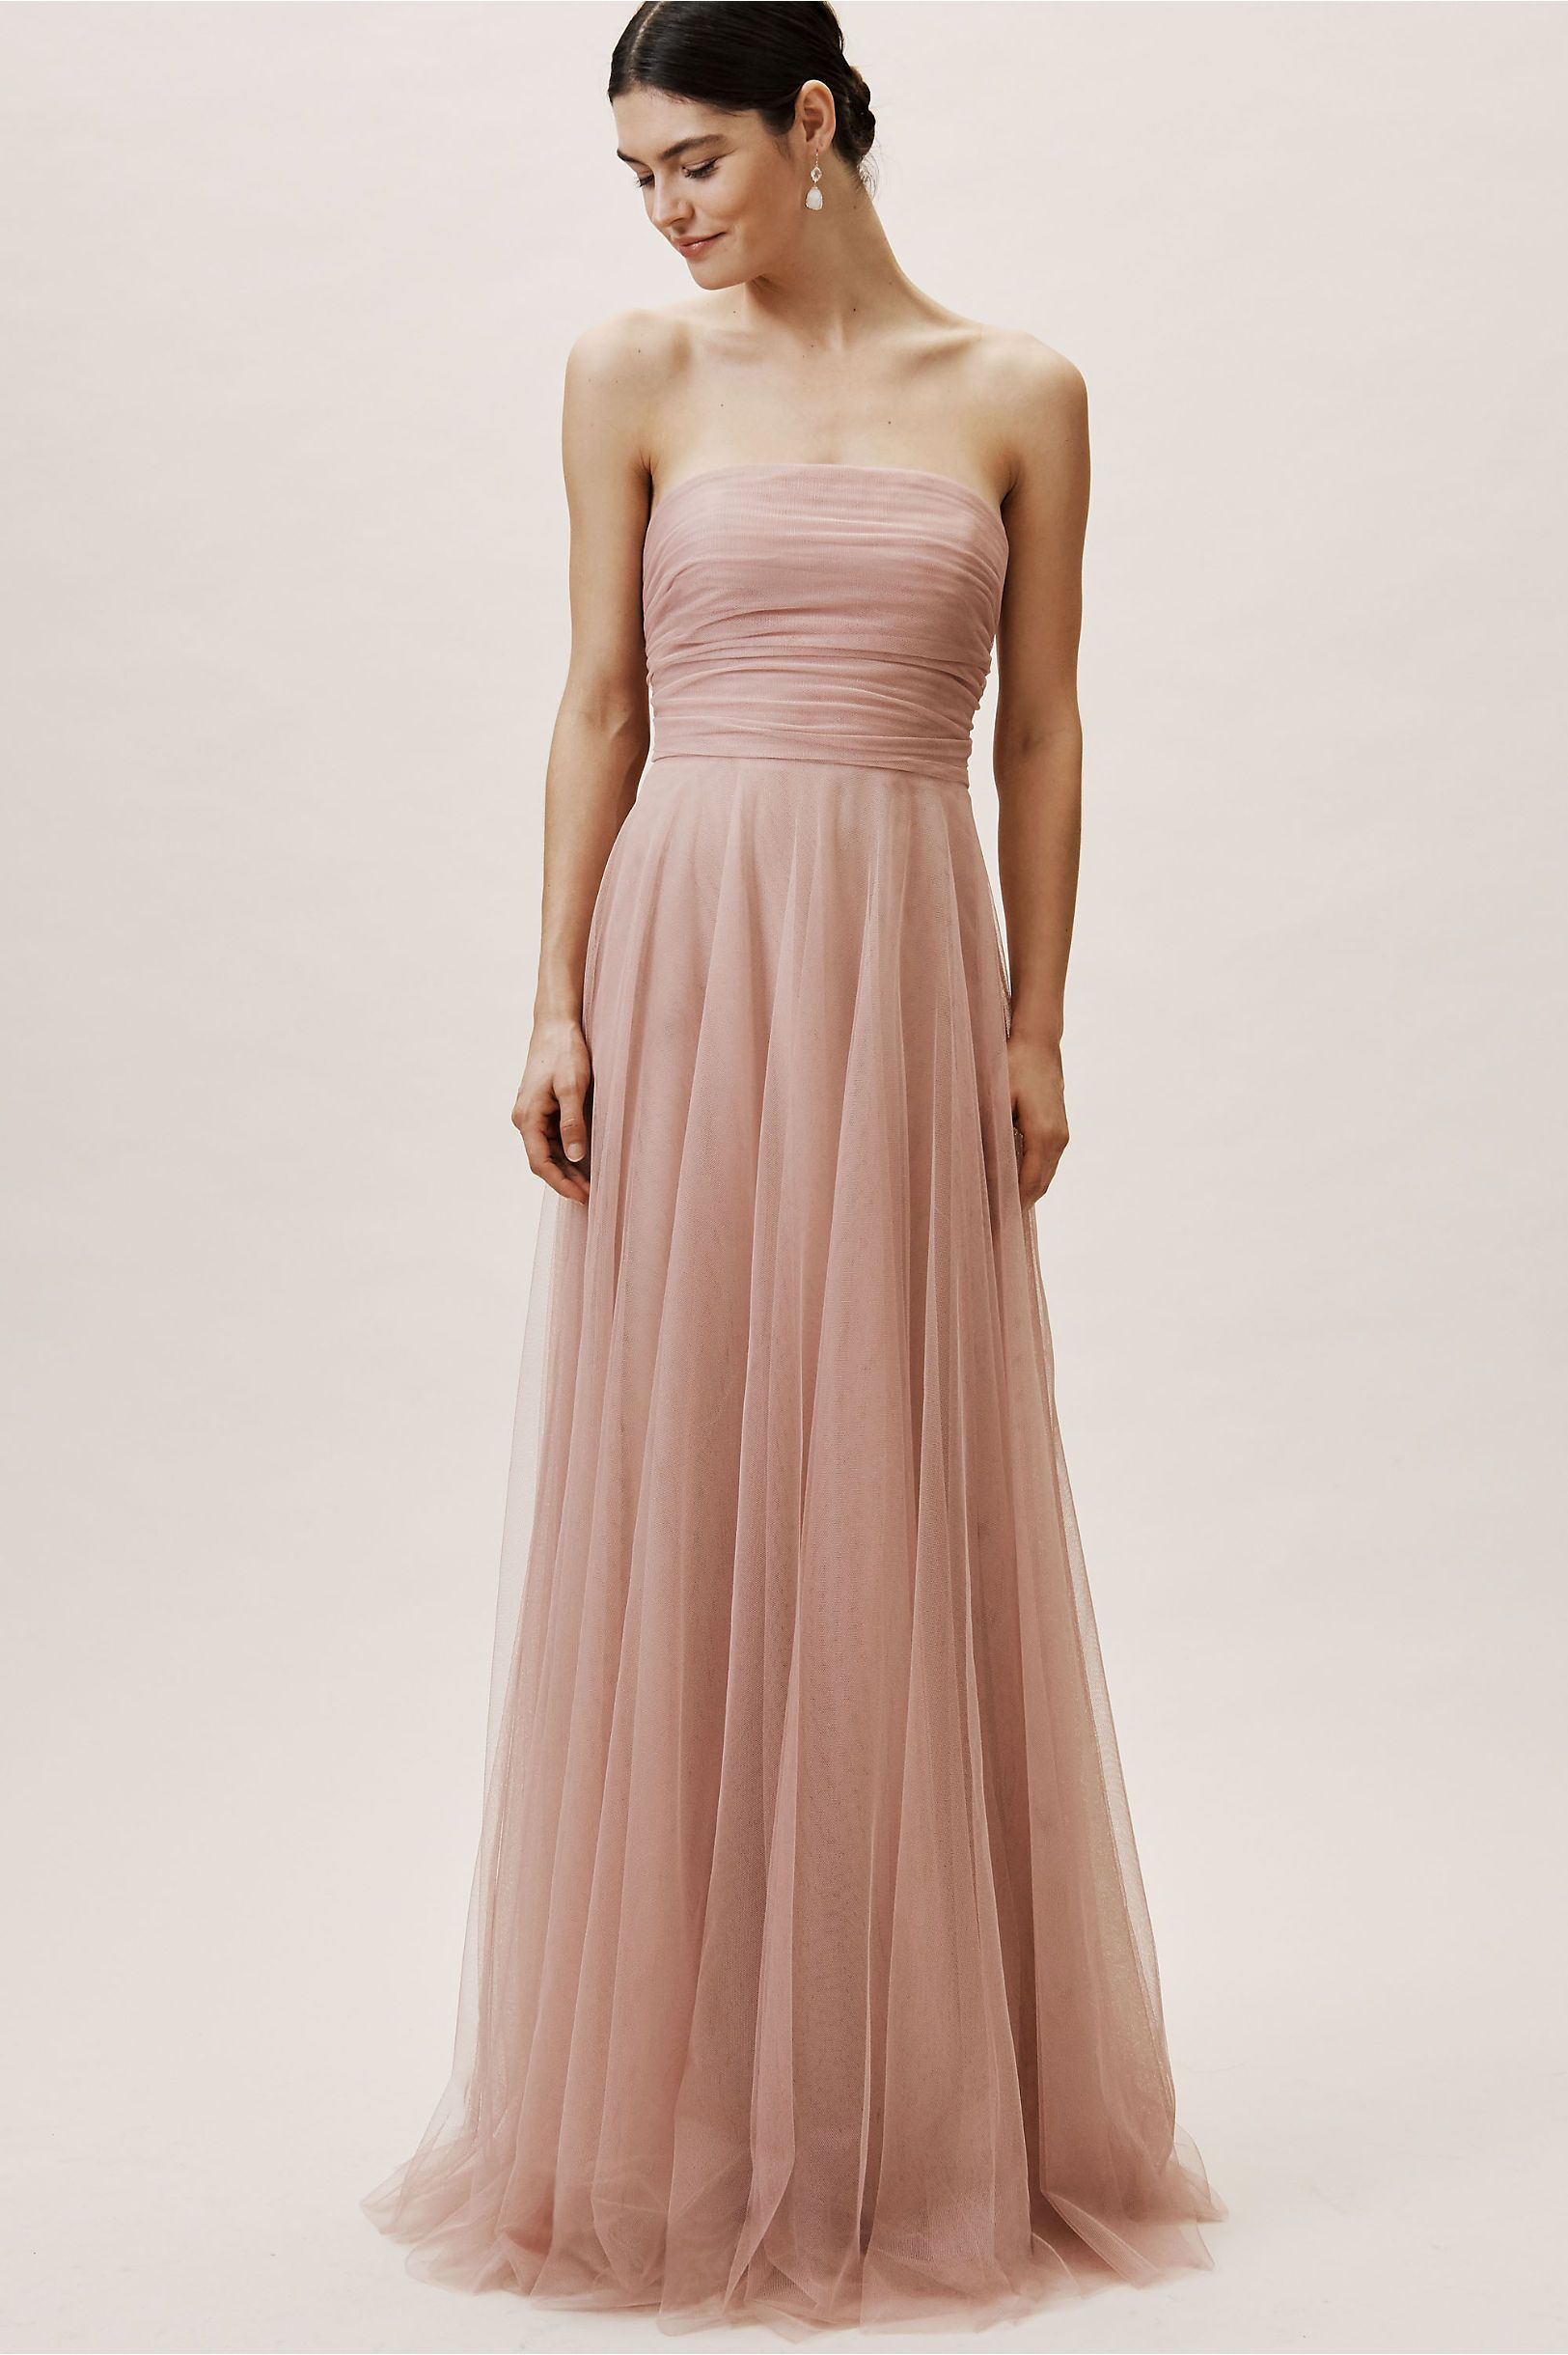 d7235da1dc185 Vera Wang Bridesmaid Dresses Amazon